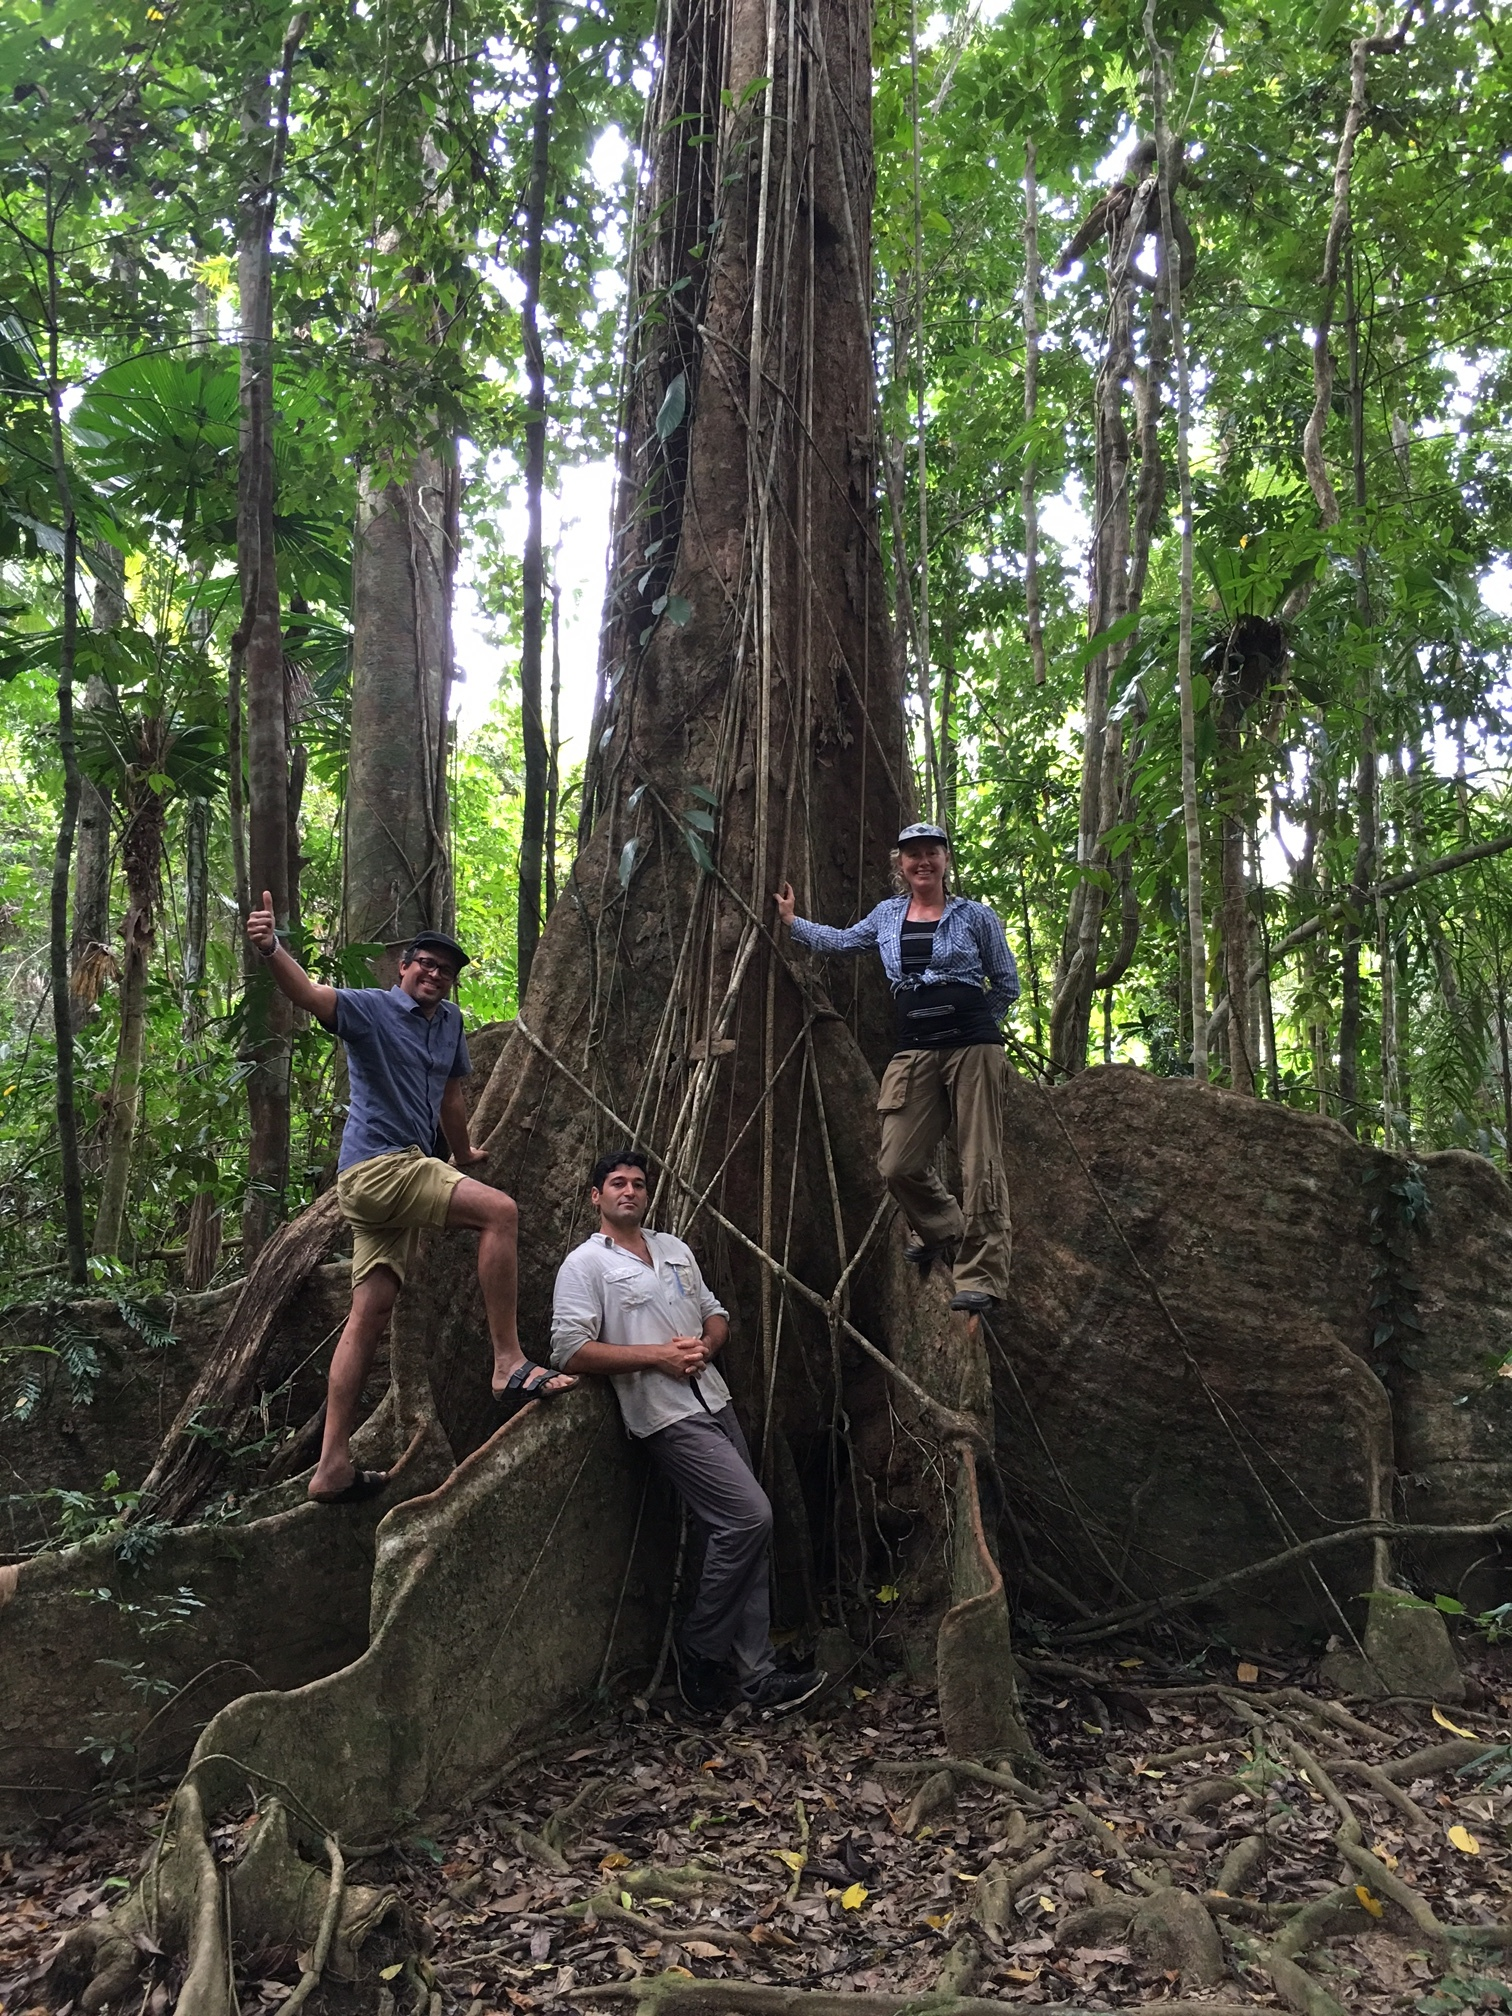 TRP founder Charith Senanayake with Rainforest champions Wren McLean and Maximo Bottaro.